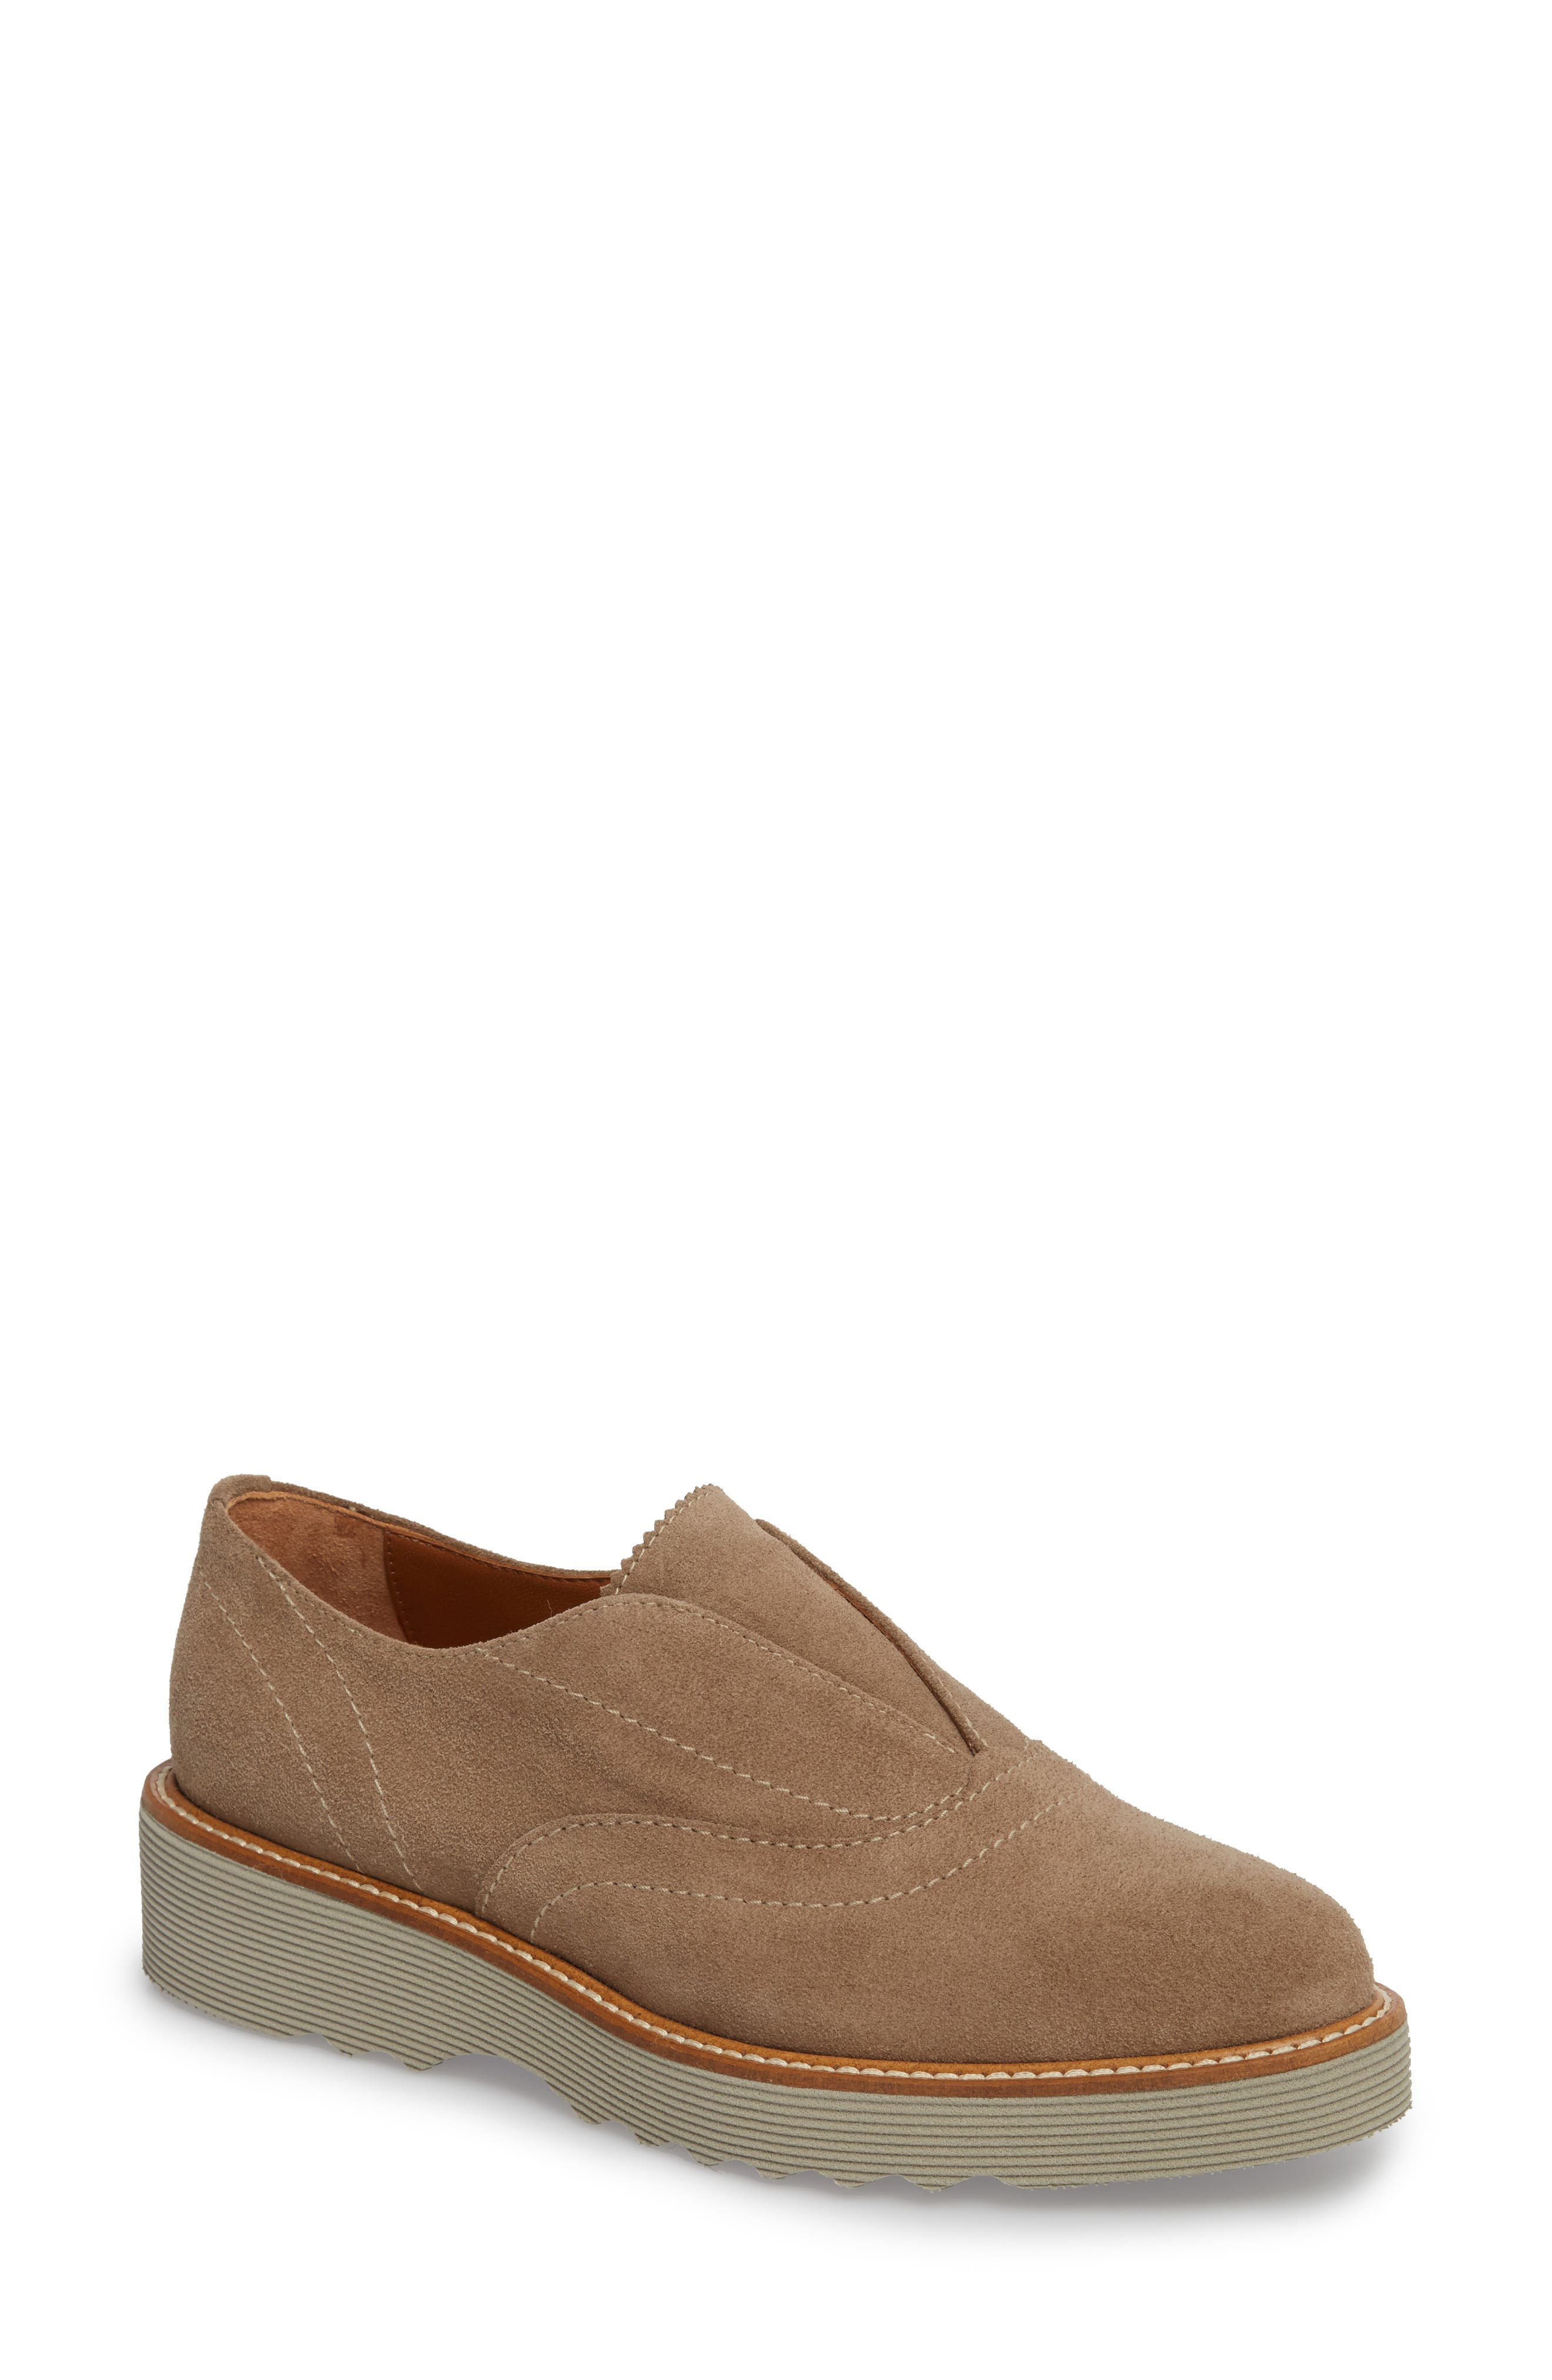 Kaleigh Weatherproof Loafer,                             Main thumbnail 1, color,                             Taupe